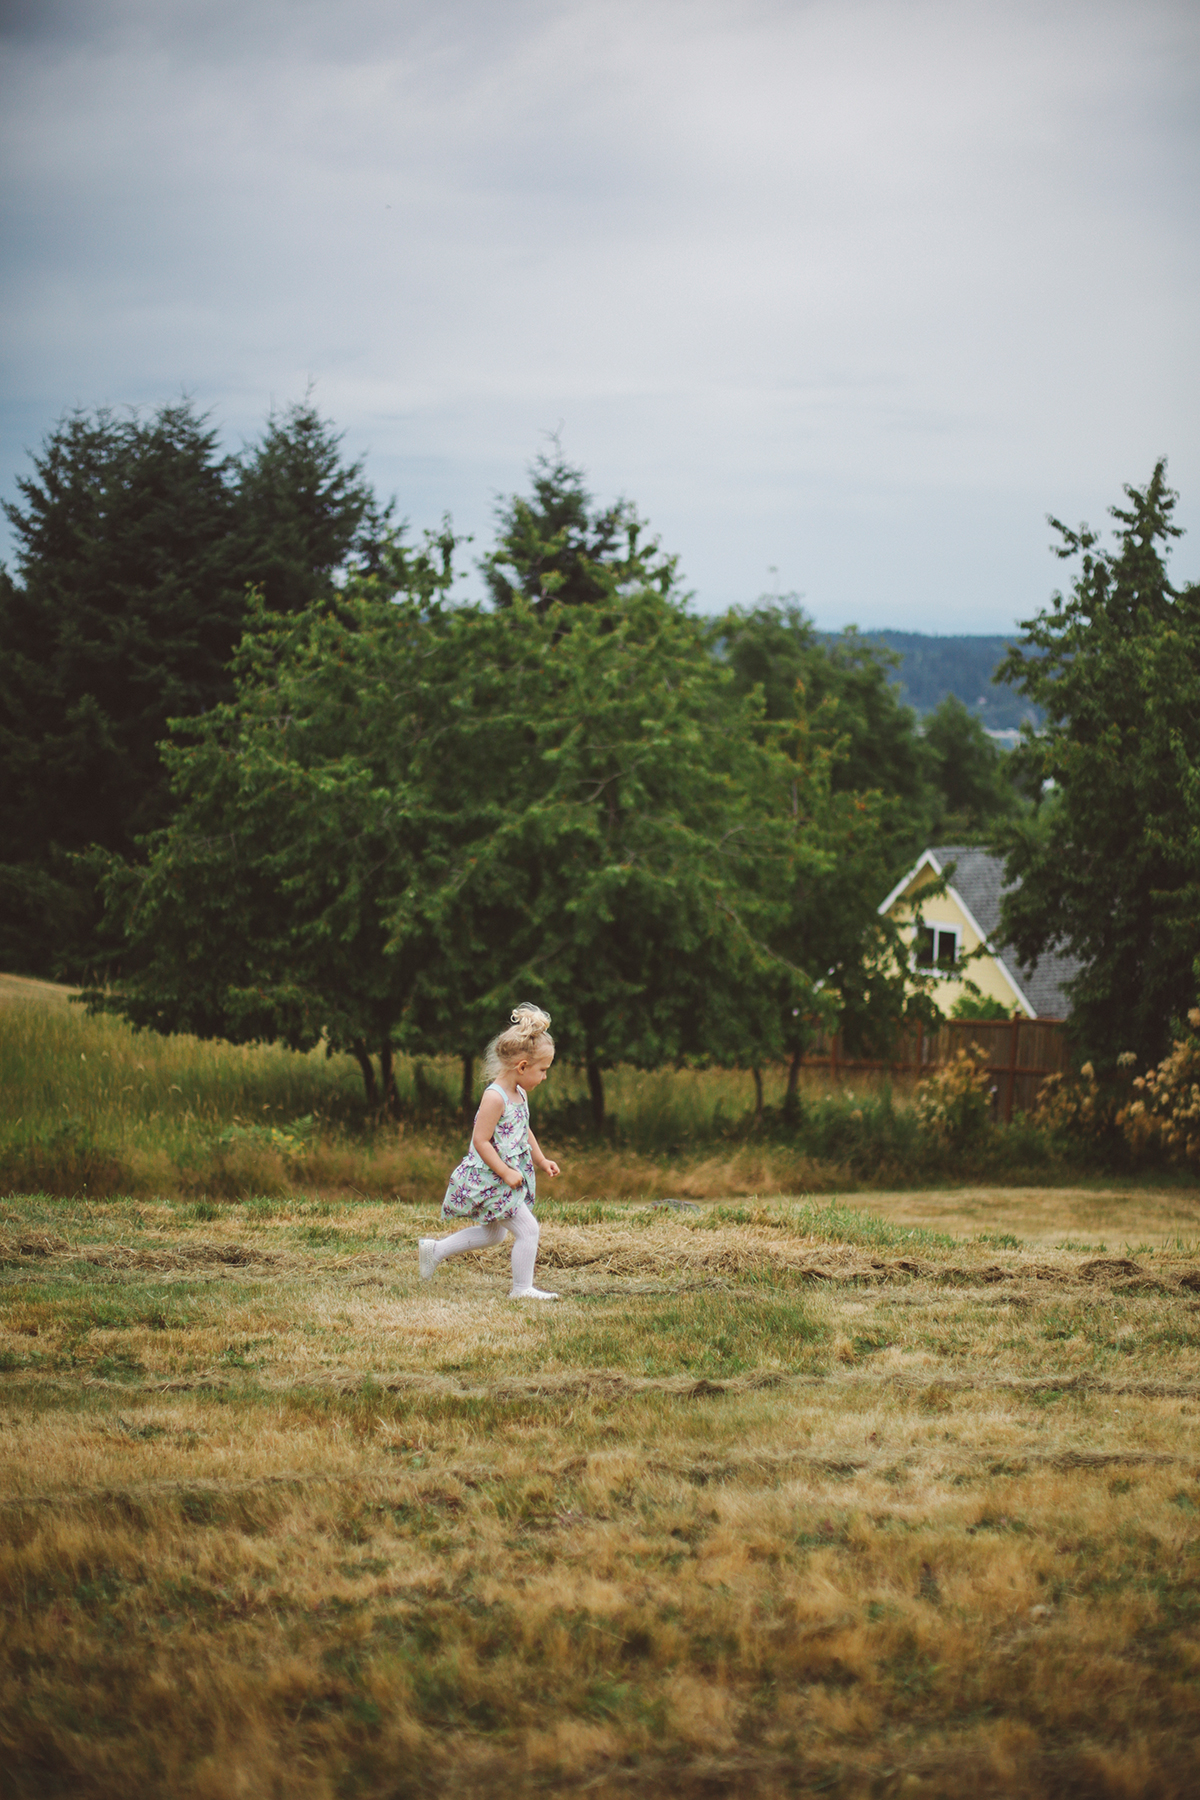 Child running across a lawn